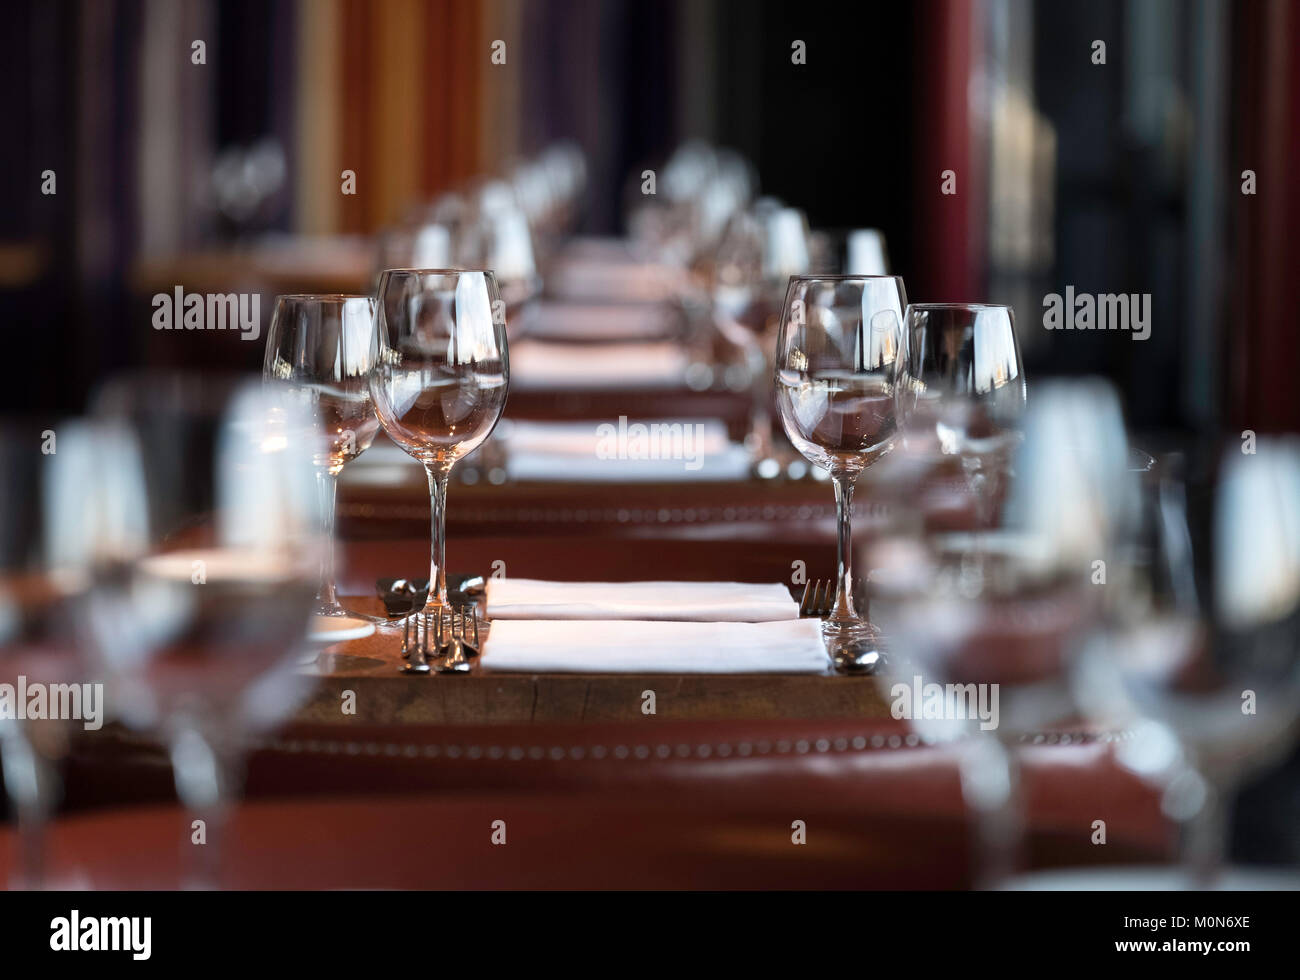 View of row of wine glasses of tables at a restaurant - Stock Image